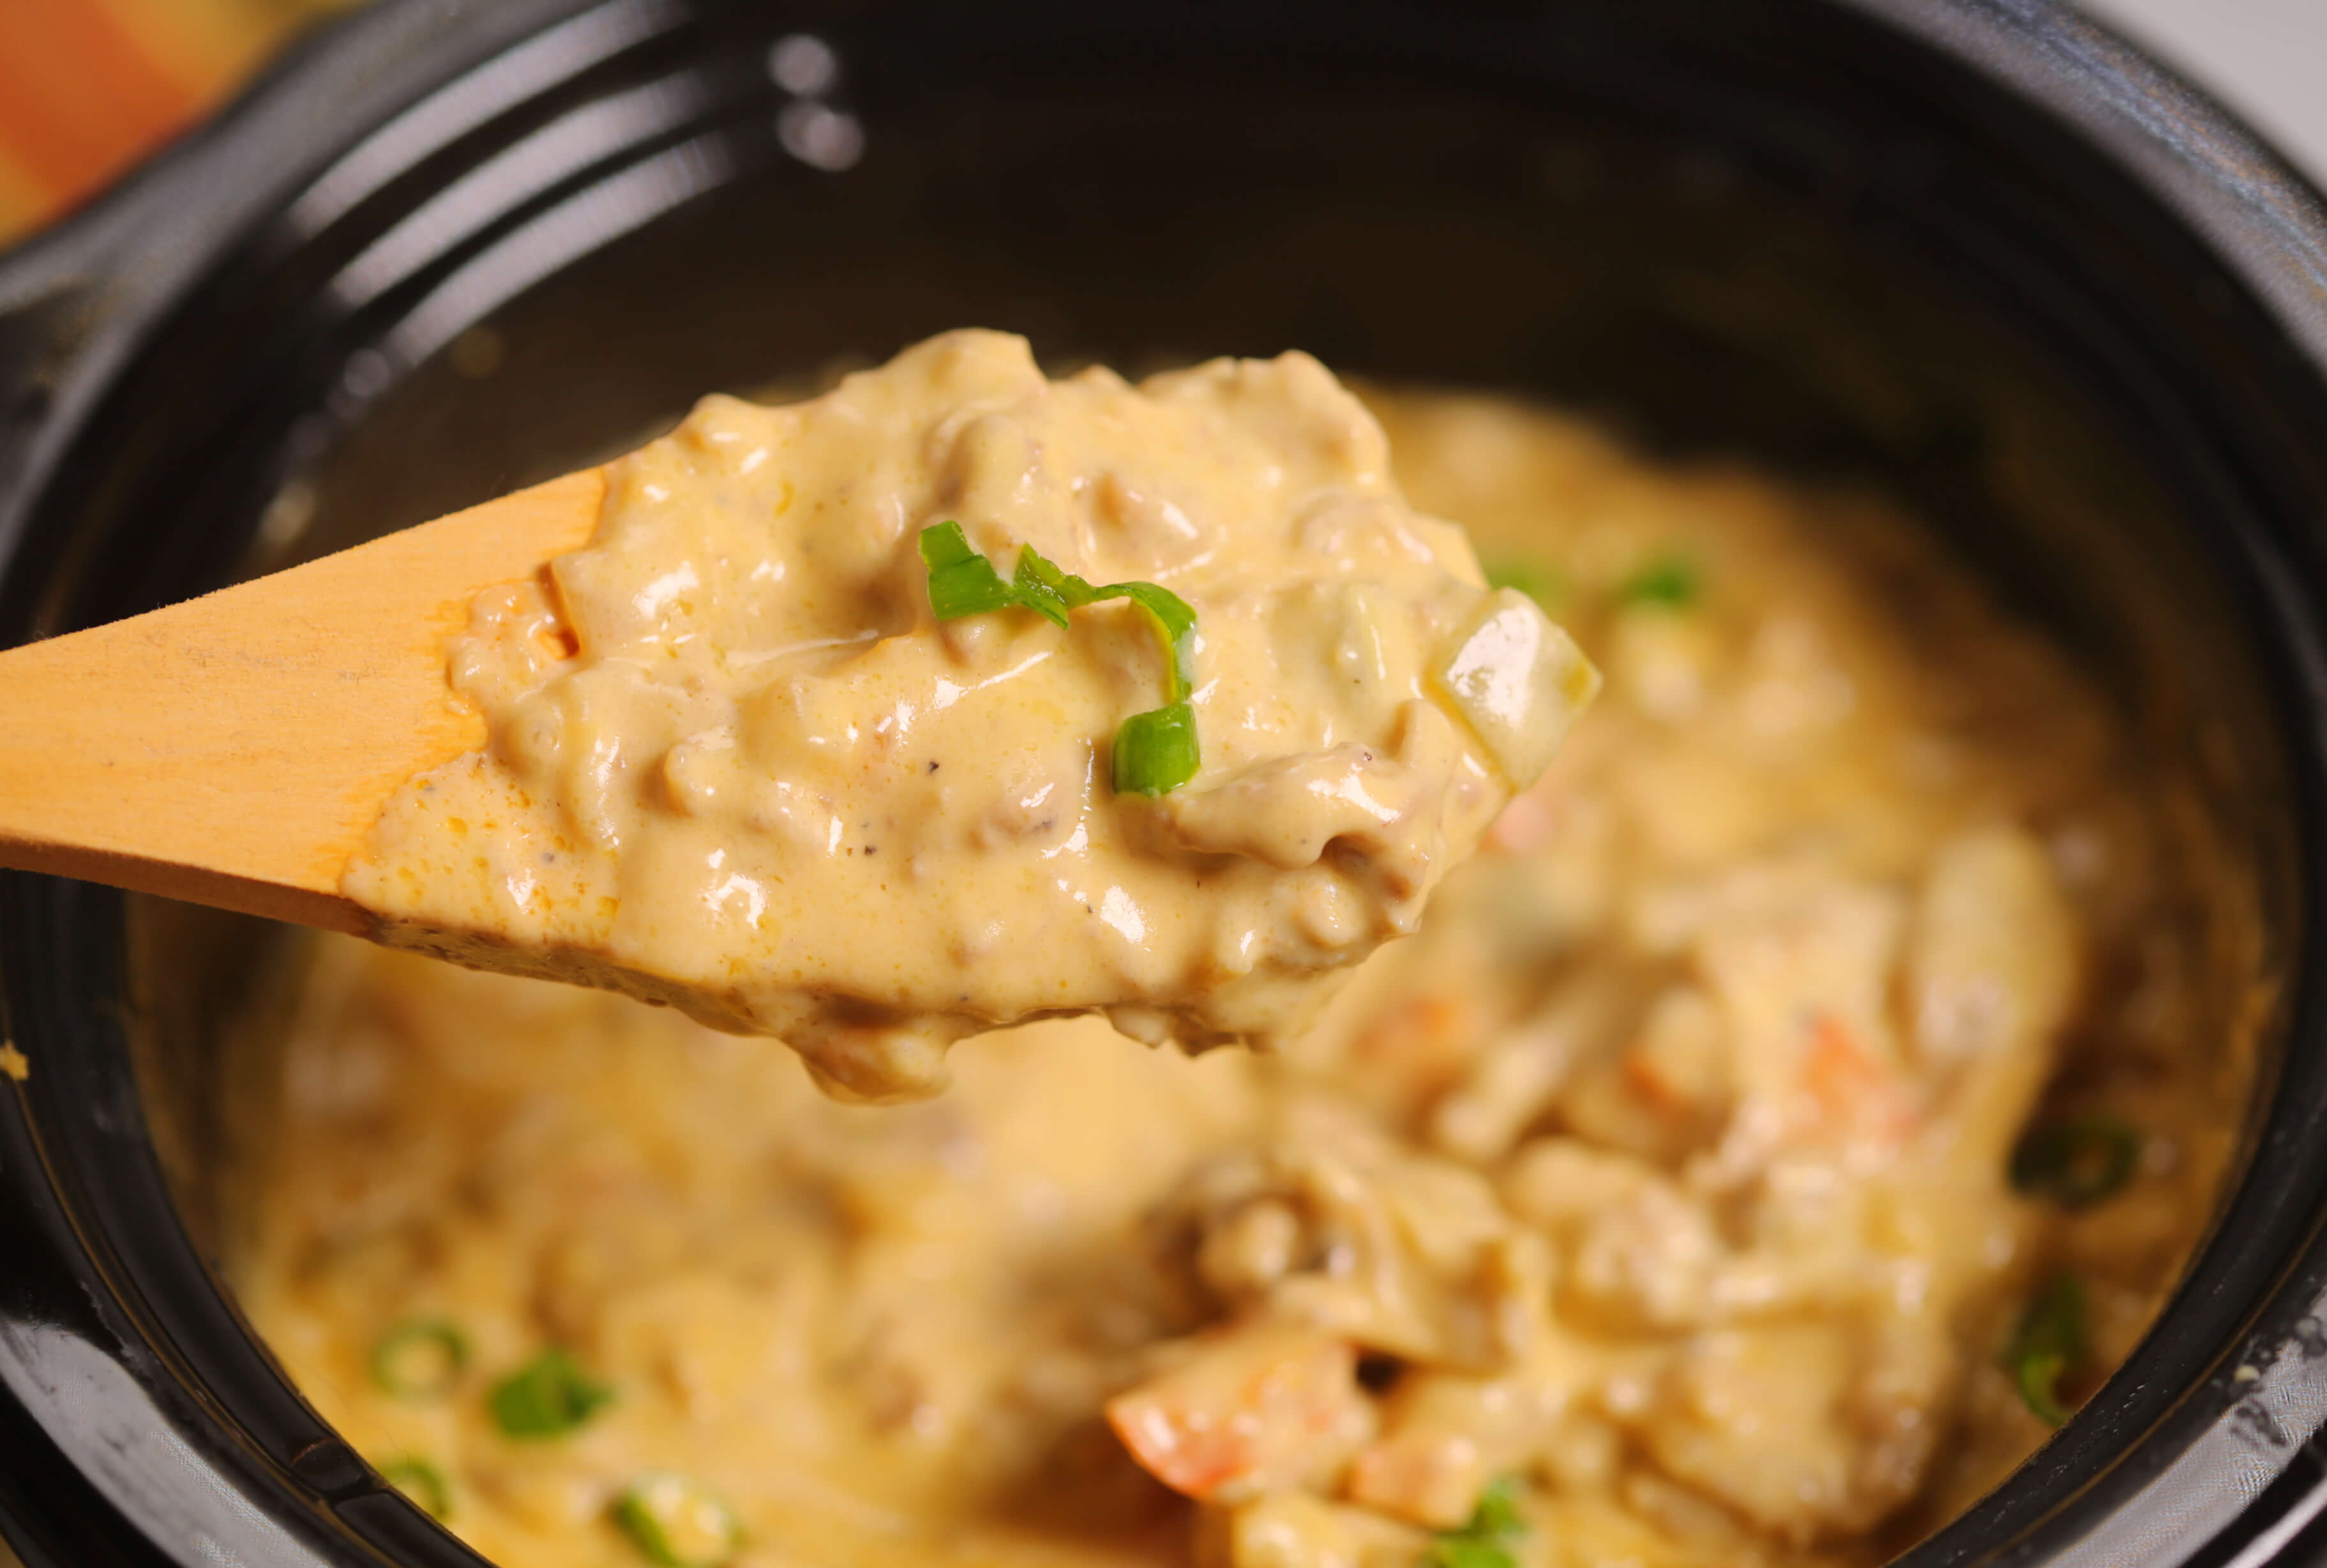 Philly Cheesesteak Dip on a wooden spoon